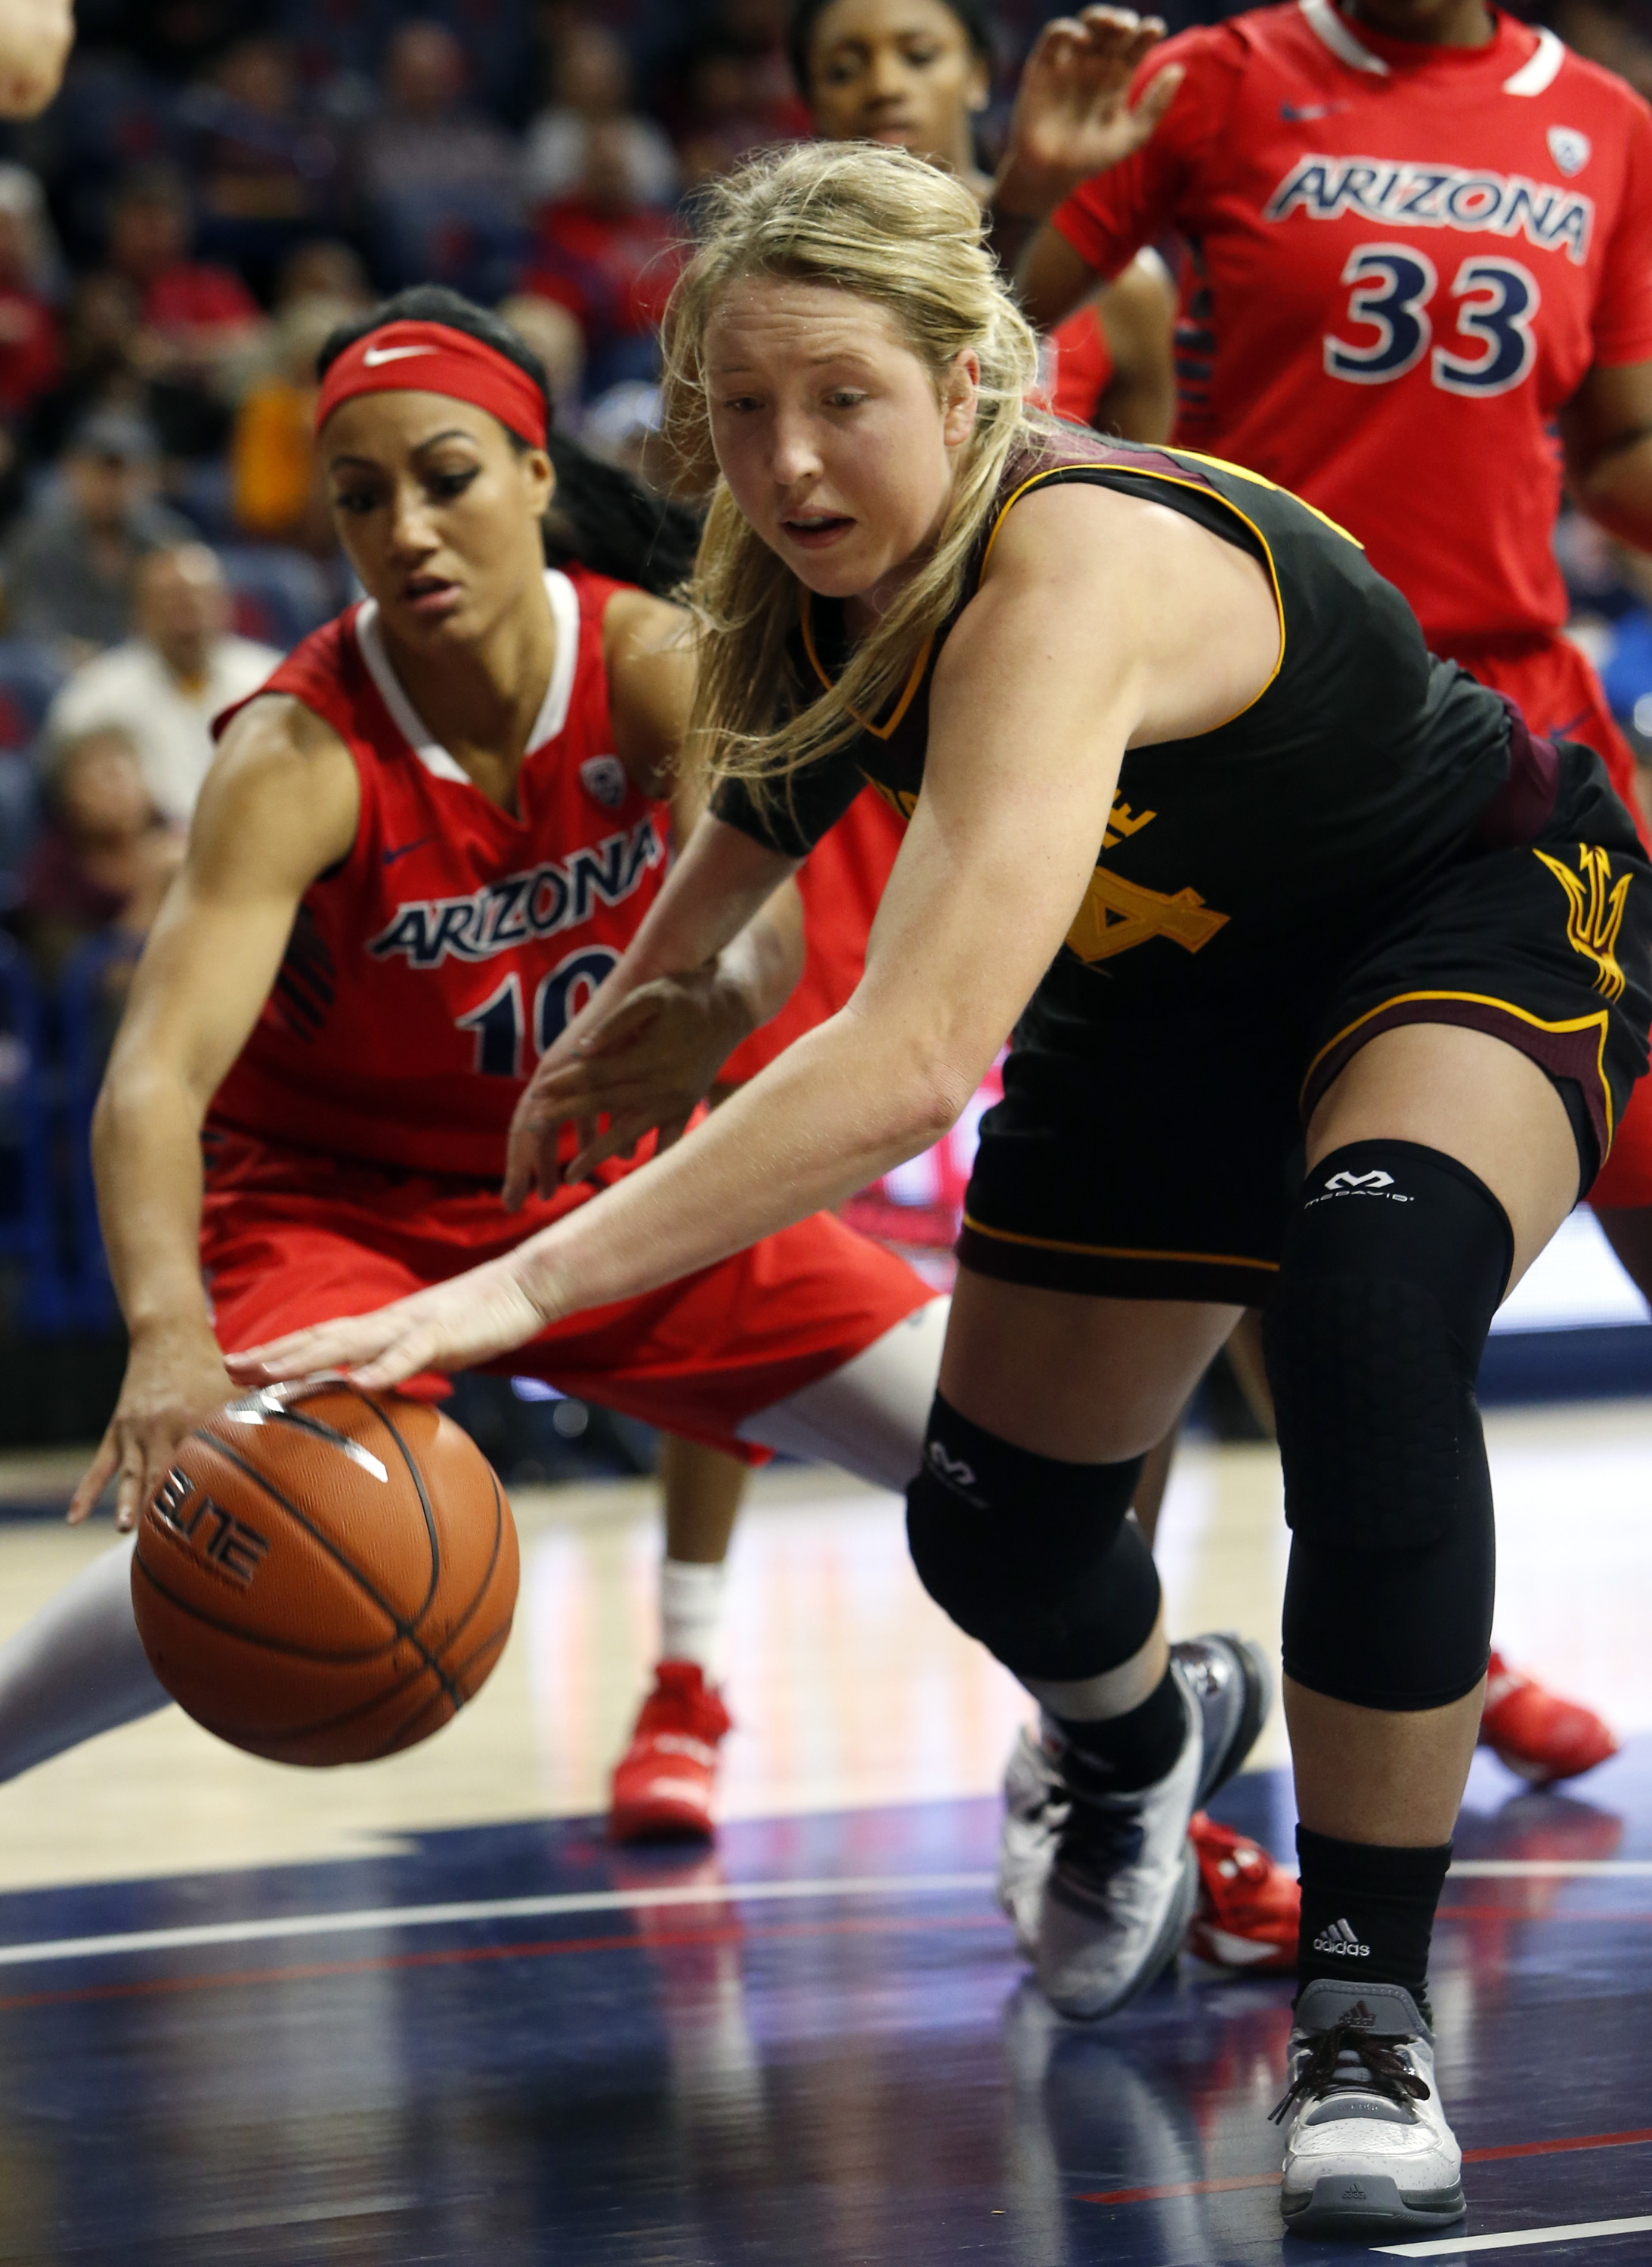 Arizona State forward Kelsey Moos steals the ball from Arizona guard Lauren Evans (10) during the fourth quarter of an NCAA college basketball game, Sunday, Jan. 24, 2016, in Tucson, Ariz. (AP Photo/Rick Scuteri)